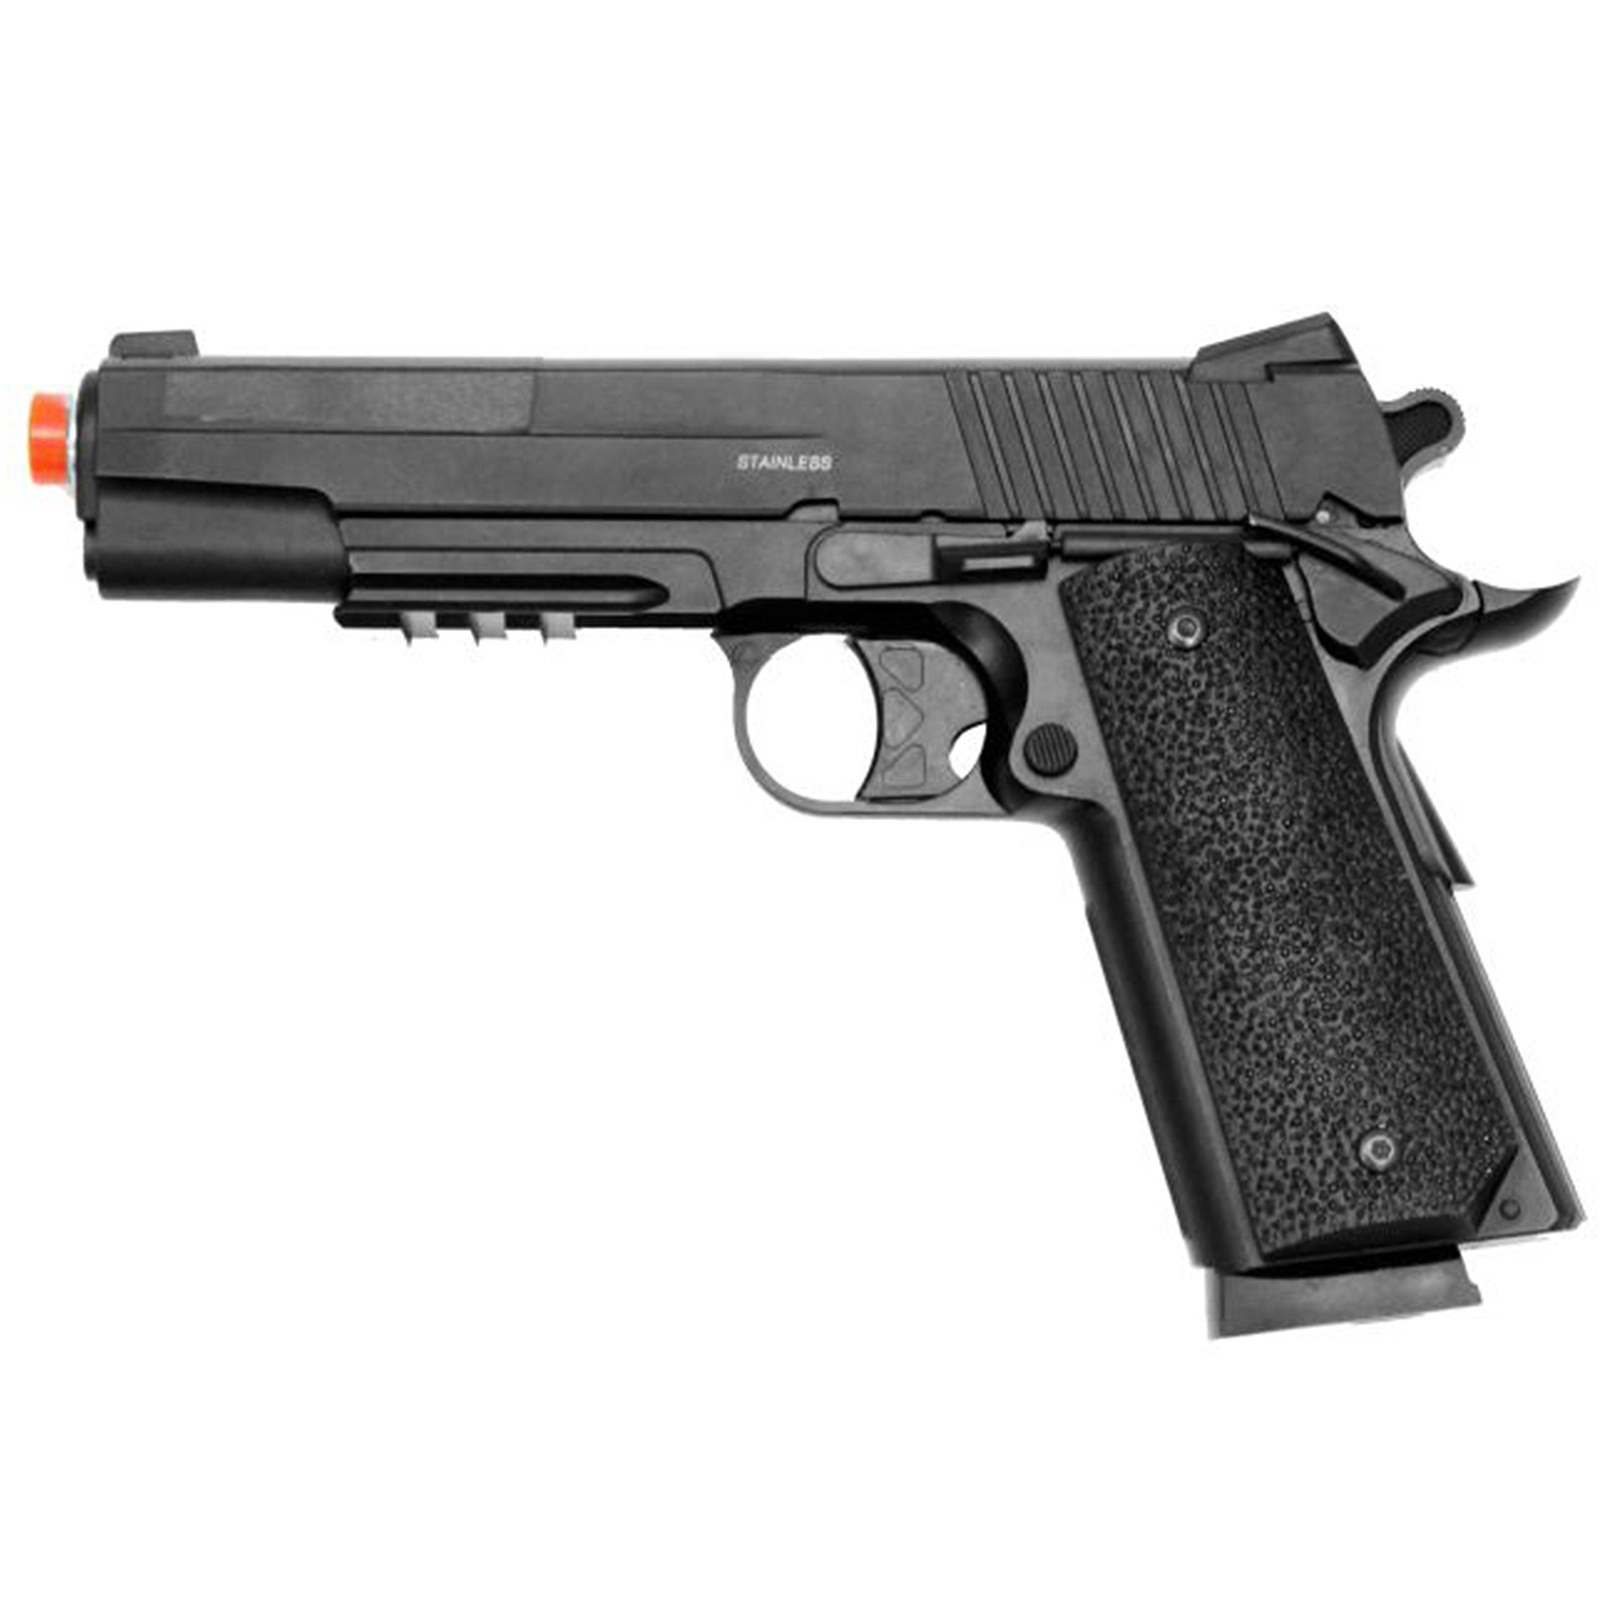 Pistola SIG SAUER P226-S5 KWC a GAS CO2 Full Metal per Softair Soft Air